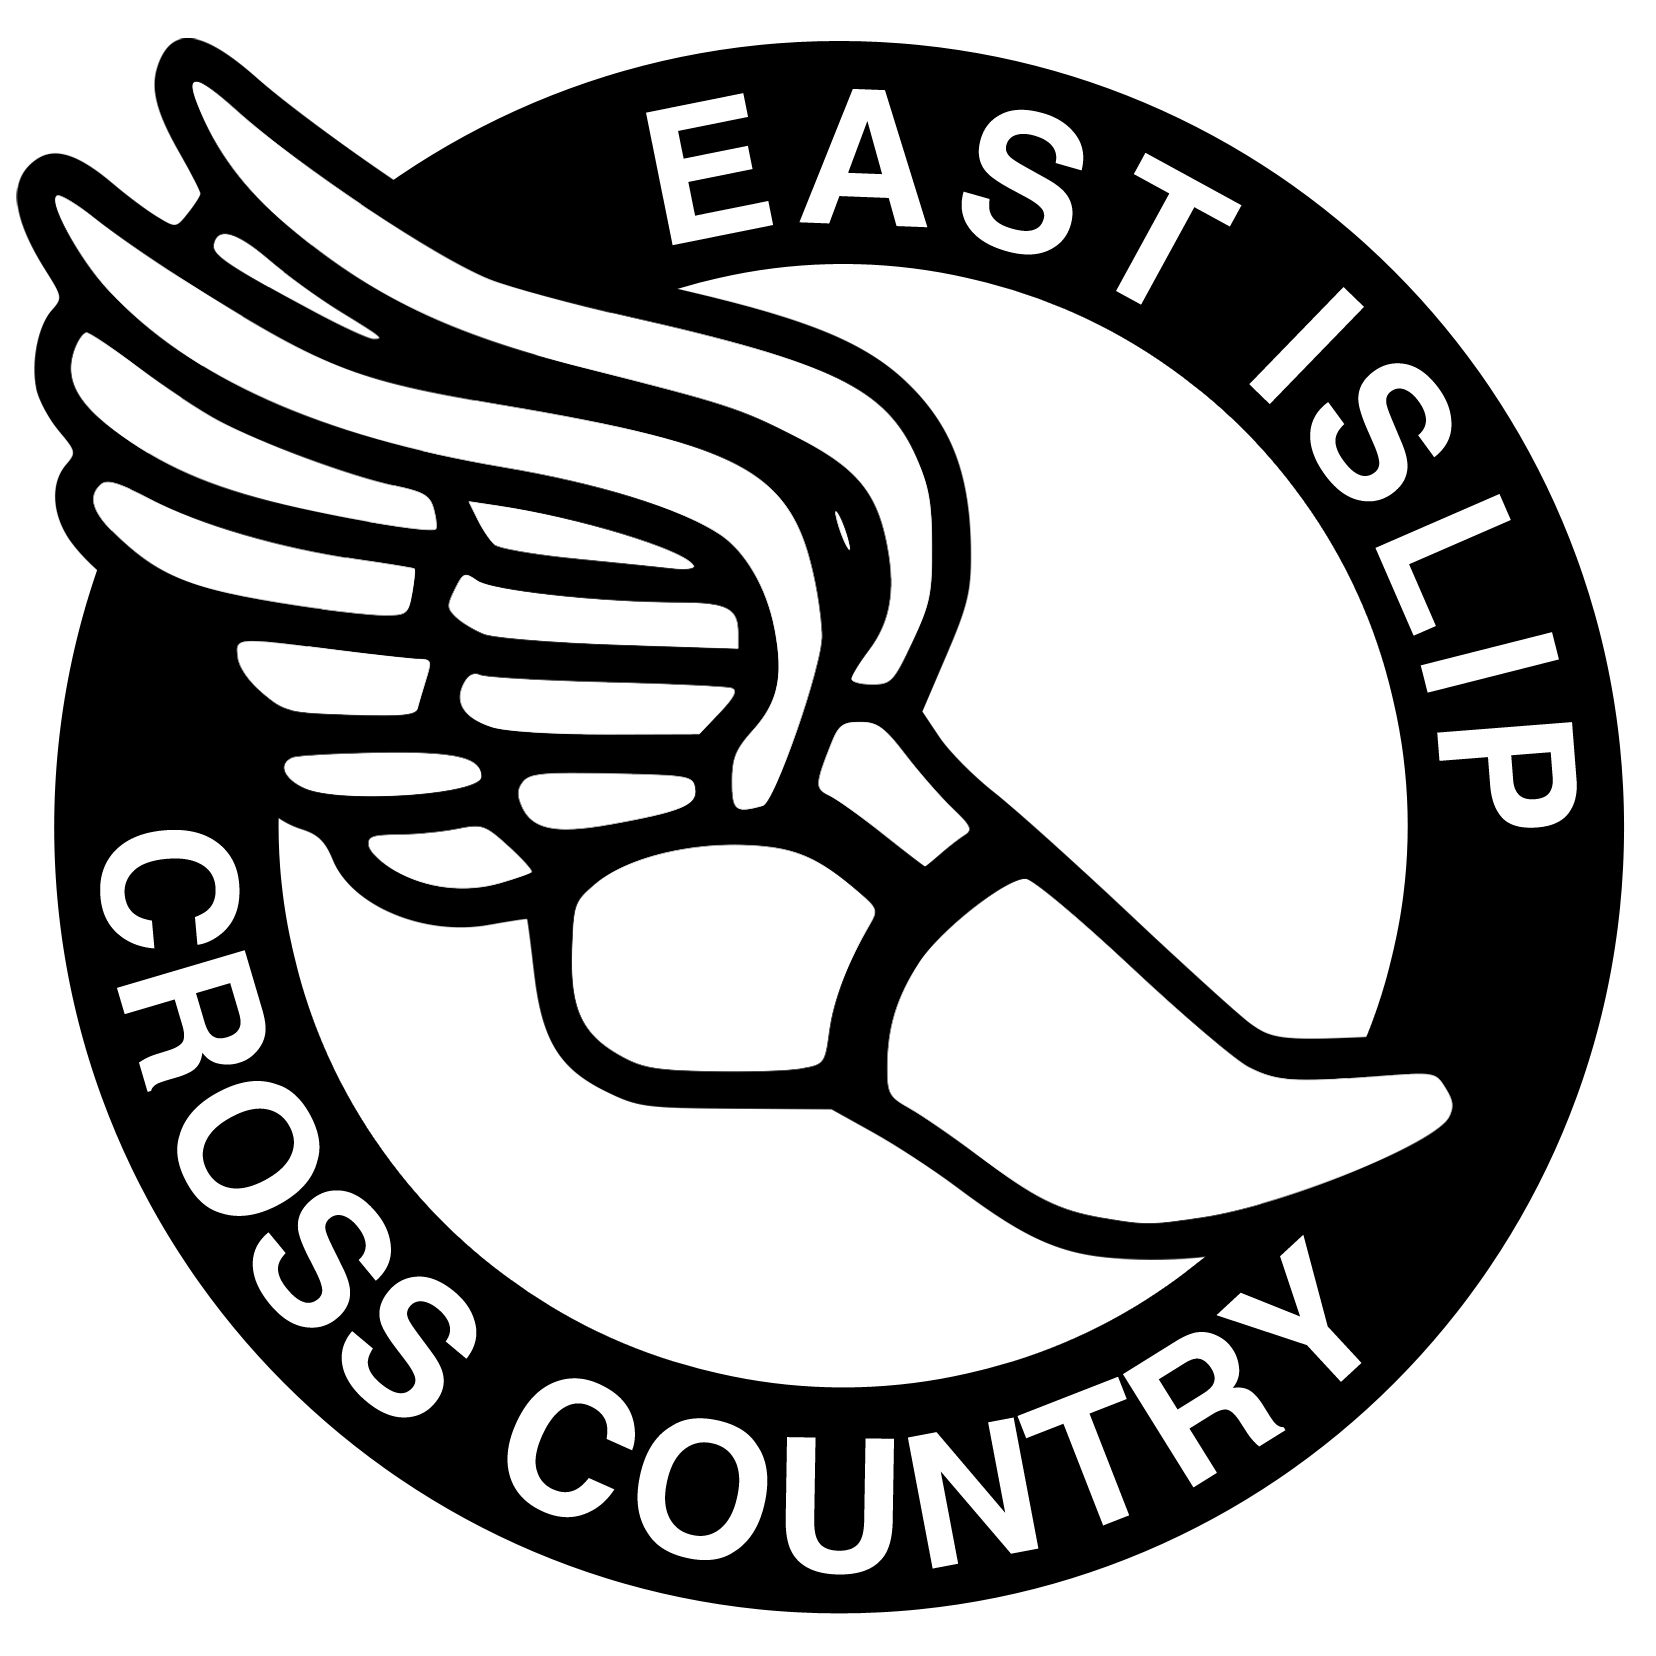 Cross country track clipart. Http www canstockphoto com